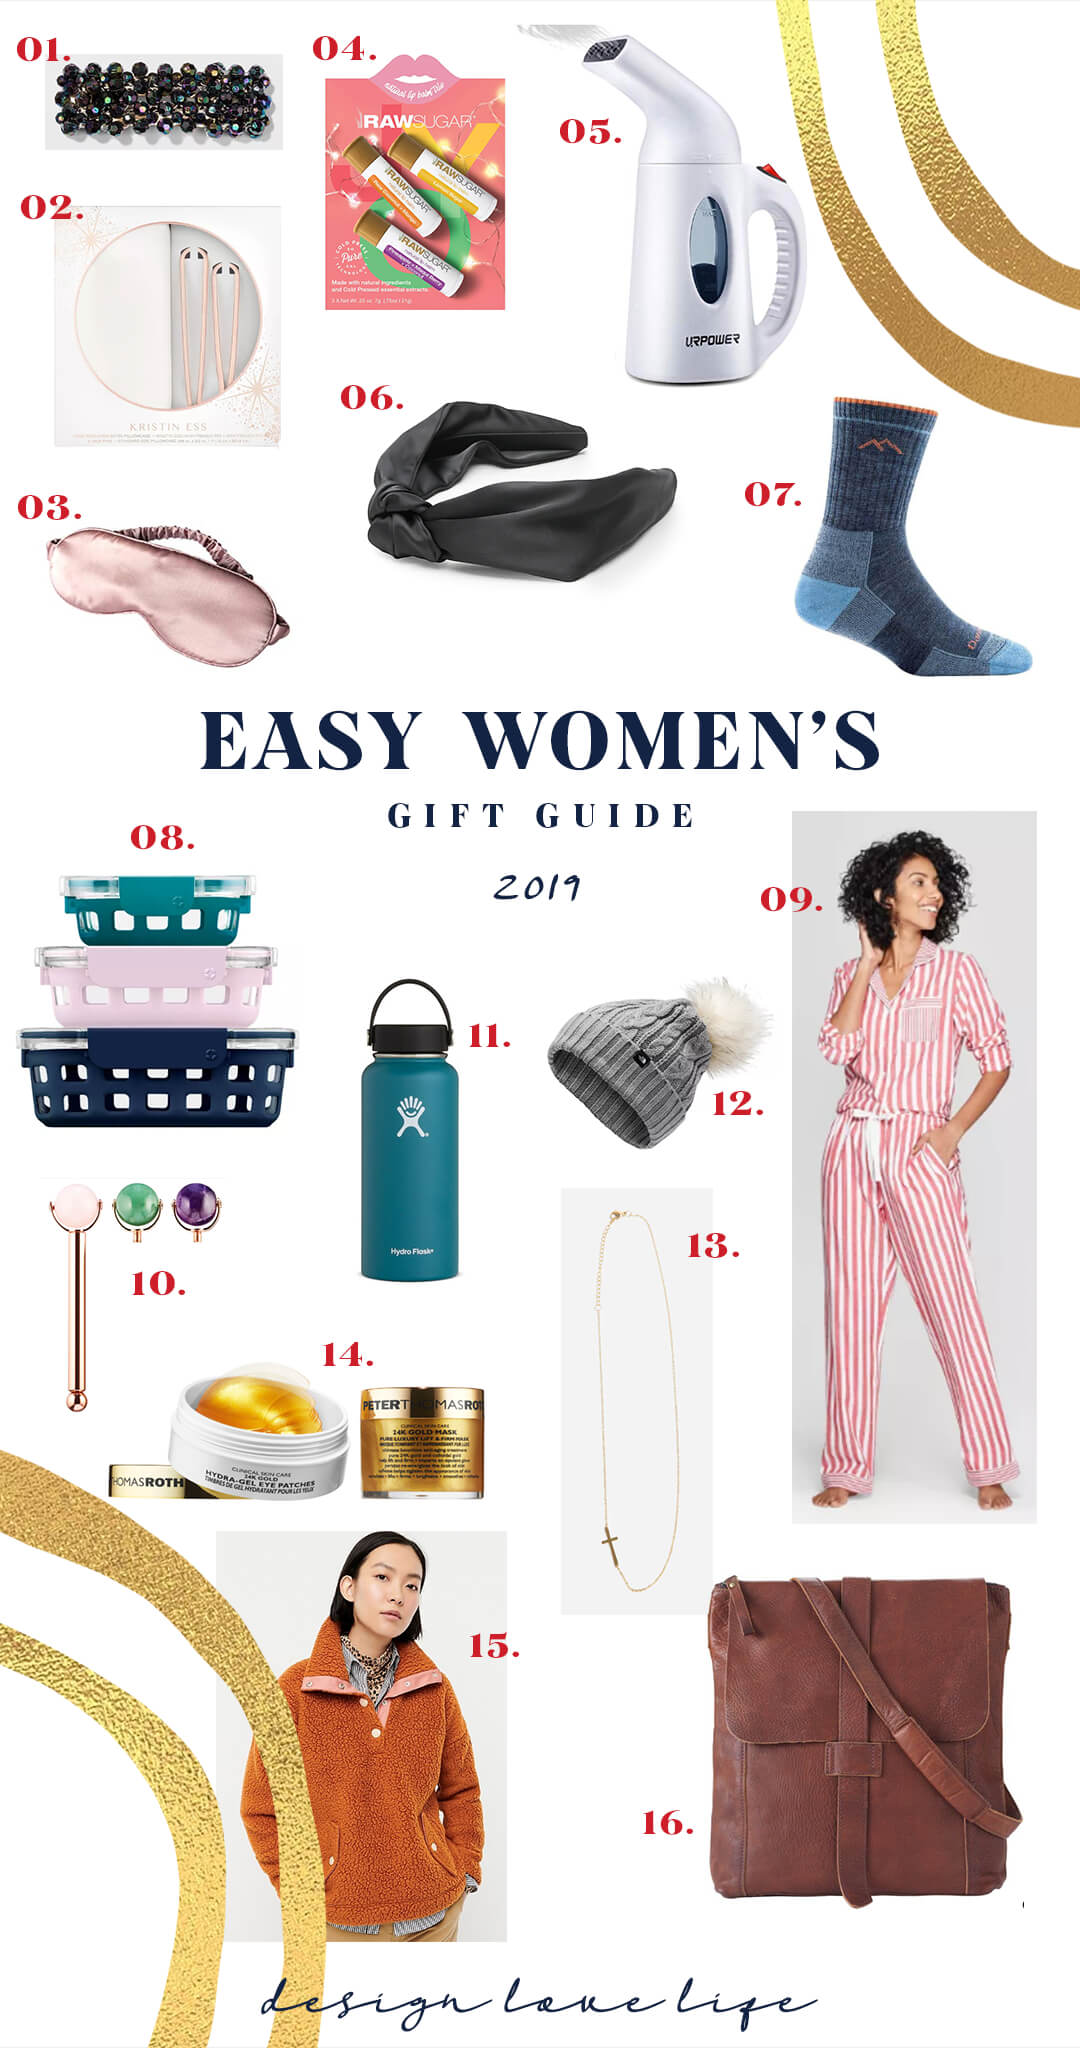 Easy Women's Gift Guide for last minute ideas